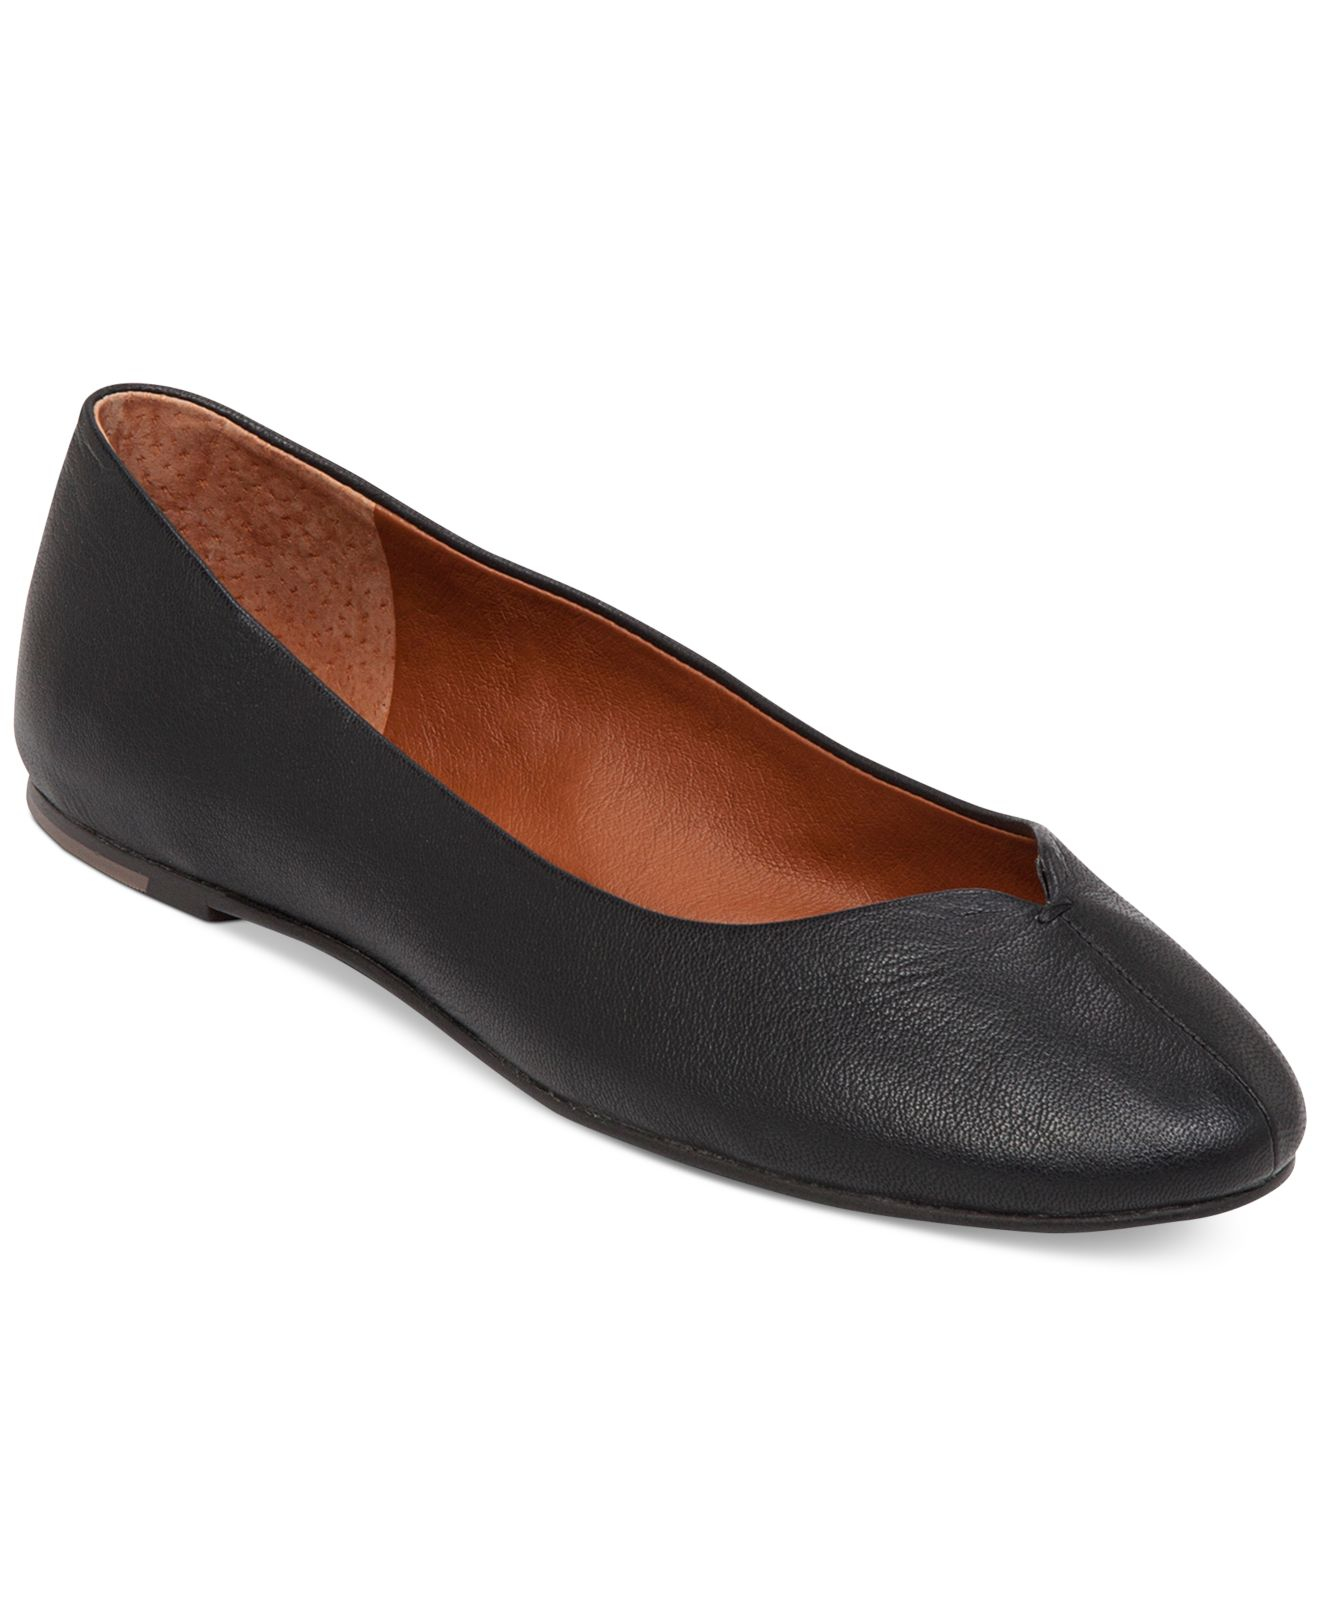 To make it even easier, we provide several product filters to help refine your search. From ballet to mary jane flats, simply choose the brand, type, style, price, shoe size, shoe width, color, and average customer rating and we'll show you the women's flats that best match your criteria.